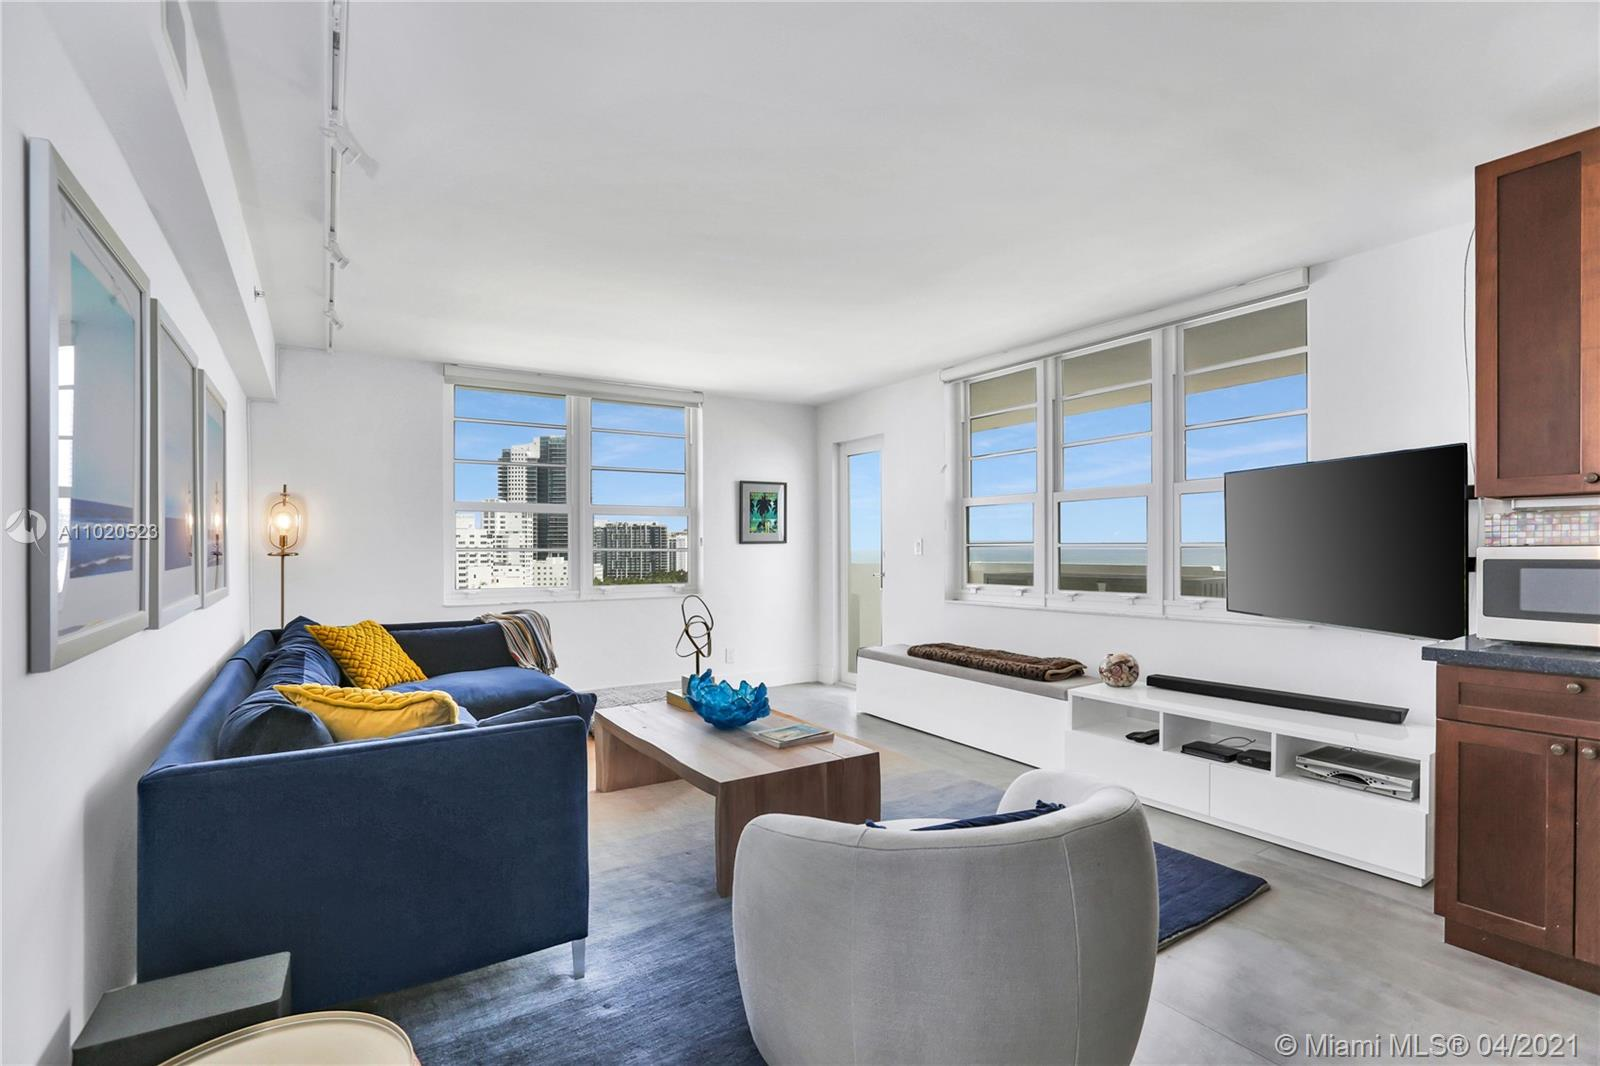 Beautifully remodeled and furnished turn-key corner unit on the ocean. 2 bed, 2 bath with rare 3 parking spaces including 2 deeded + 1 valet ($70k value).  High floor with direct unobstructed ocean views perfectly located near Lincoln Road and fabulous restaurants.  Generous floor plan with Miele & Subzero appliances. New ceramic flooring and lighting.  In unit Bosch washer & dryer, flat screen plasma TVs, designer furniture.  Upgraded impact windows throughout.  Resort style amenities include onsite management, concierge, doorman, 24-hr security, and pool service with attendant. Renovated gym, lobby and pool deck.  Investors can rent 12 times per year, 30-day minimum.